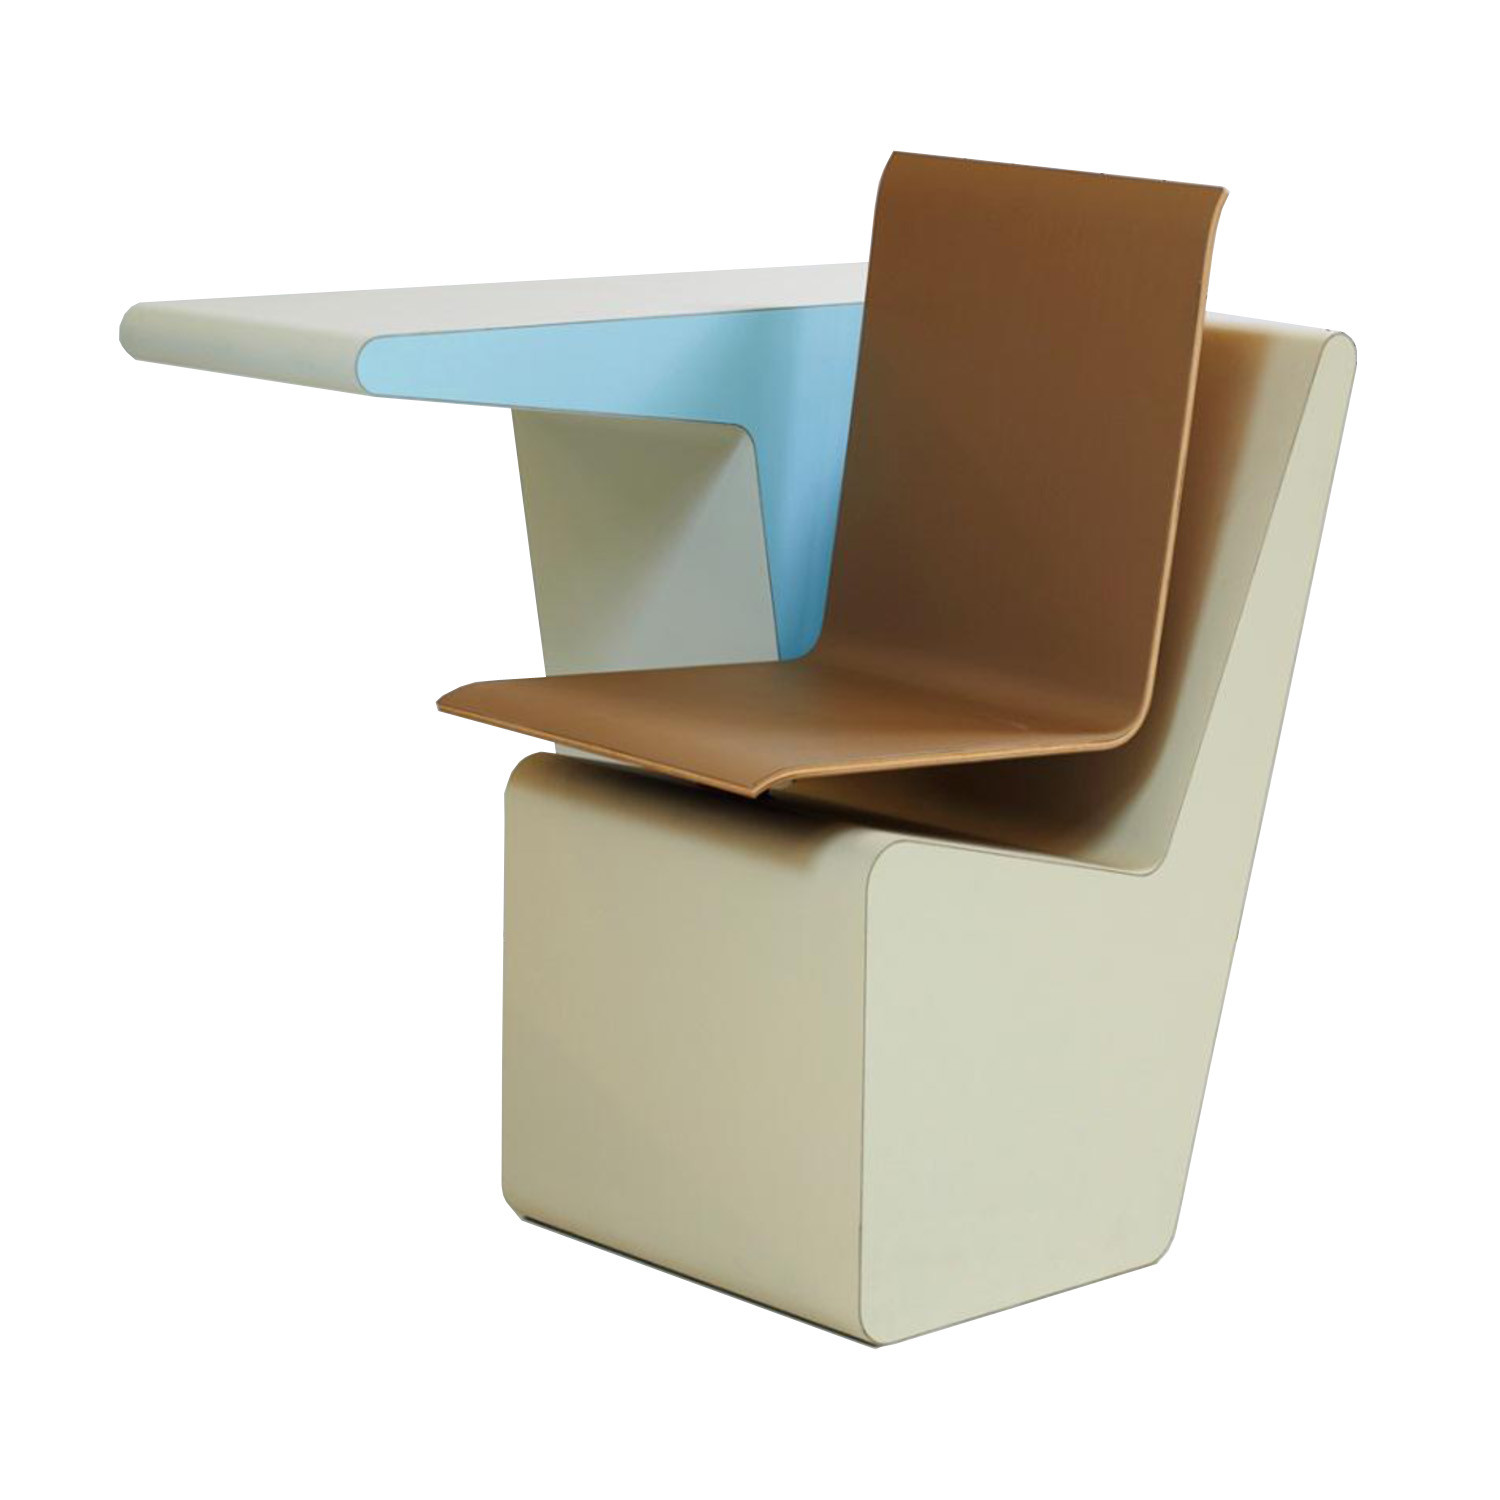 Sideseat and desk multi functional furniture apres for Functional furniture